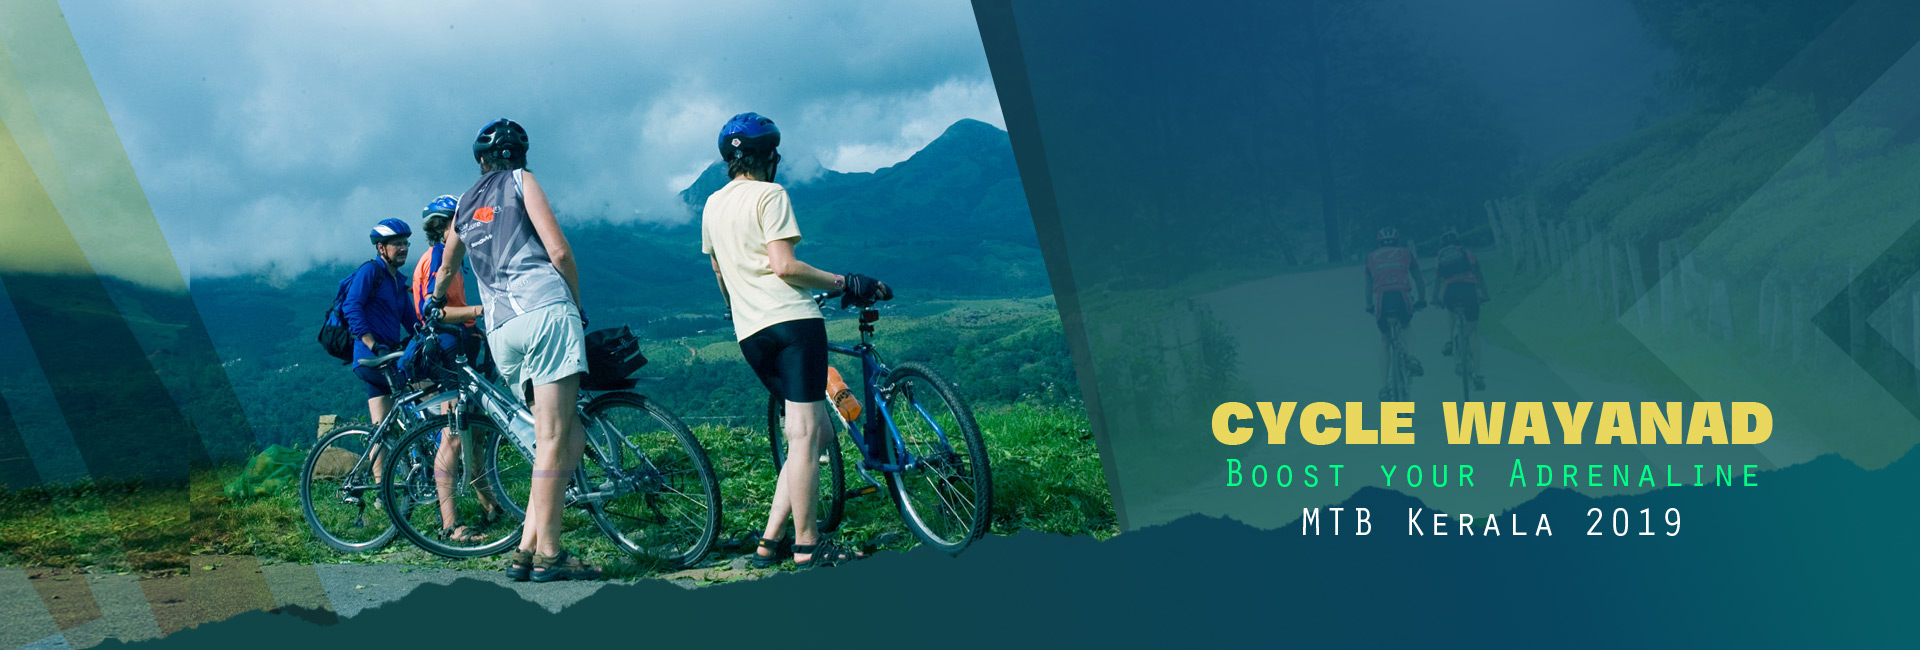 Cycle Wayanad, Boost your Adrenaline